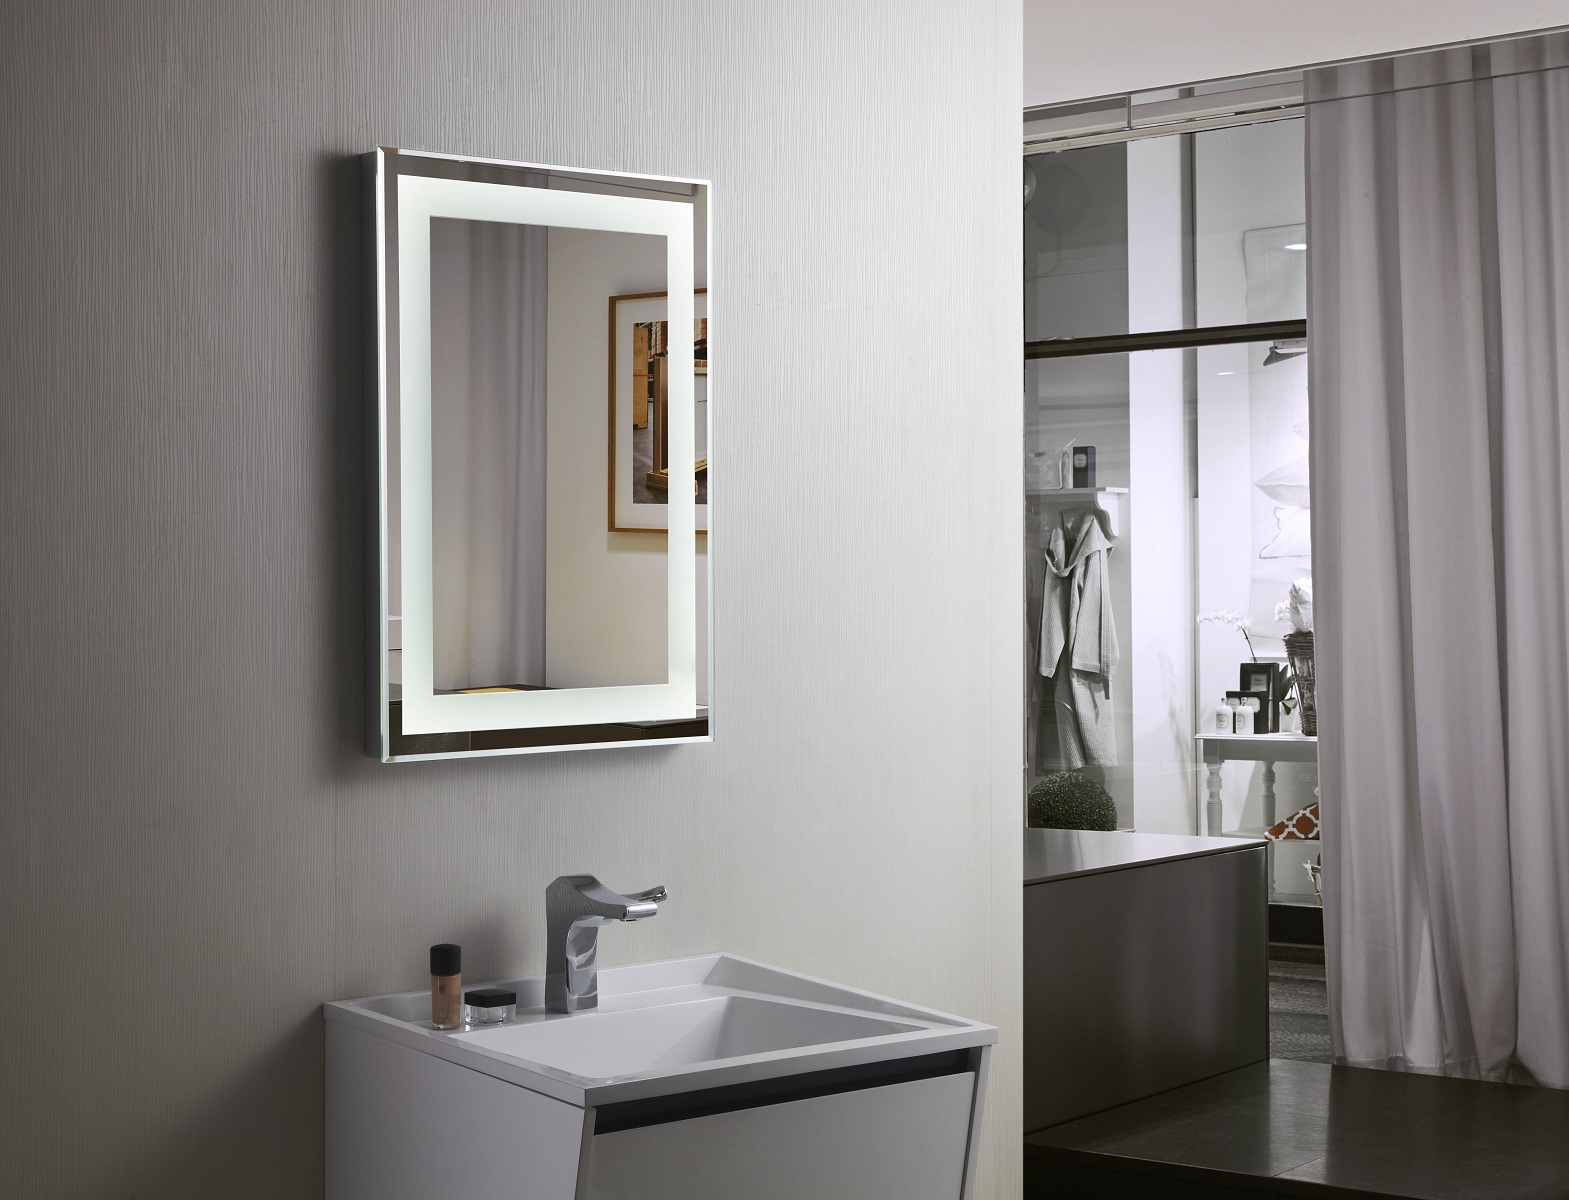 Budapest lighted vanity mirror led bathroom mirror for Mirrors for bathroom vanity